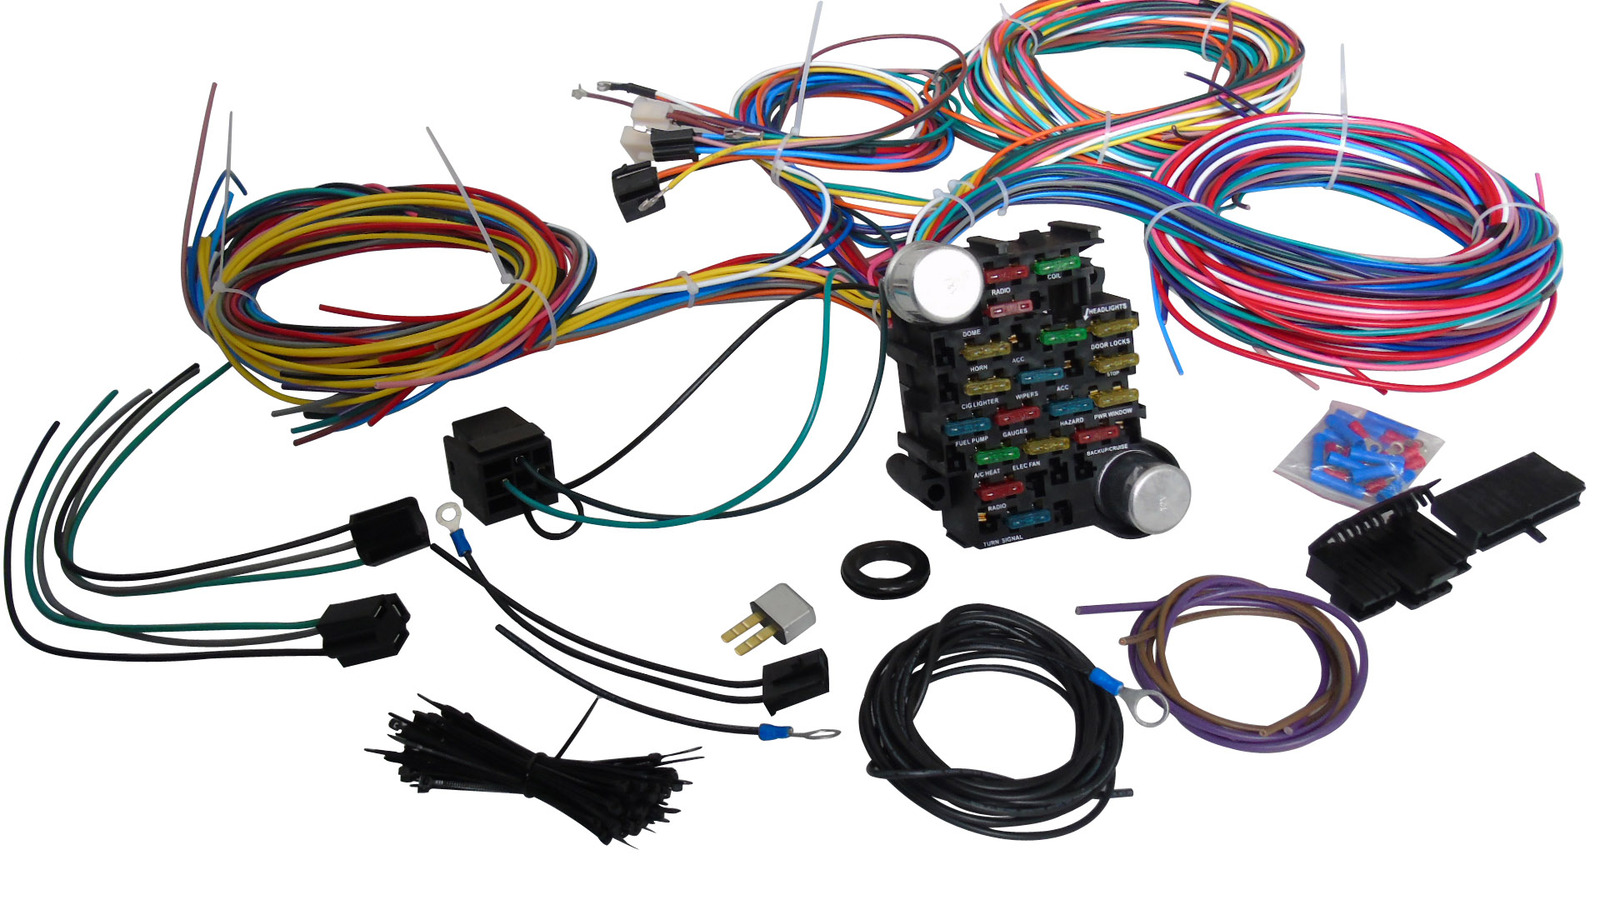 Late Model Universal Wiring Harness Kits For Vehicles | Wiring ... on vehicle exhaust diagrams, car audio diagrams, vehicle schematics, vehicle suspension, vehicle home, vehicle processing diagrams, vehicle maintenance diagrams, vehicle engineering diagrams, vehicle repair diagrams, vehicle chassis, lighting diagrams, parts diagrams, led diagrams, battery diagrams, vehicle electrical diagrams, relays diagrams,